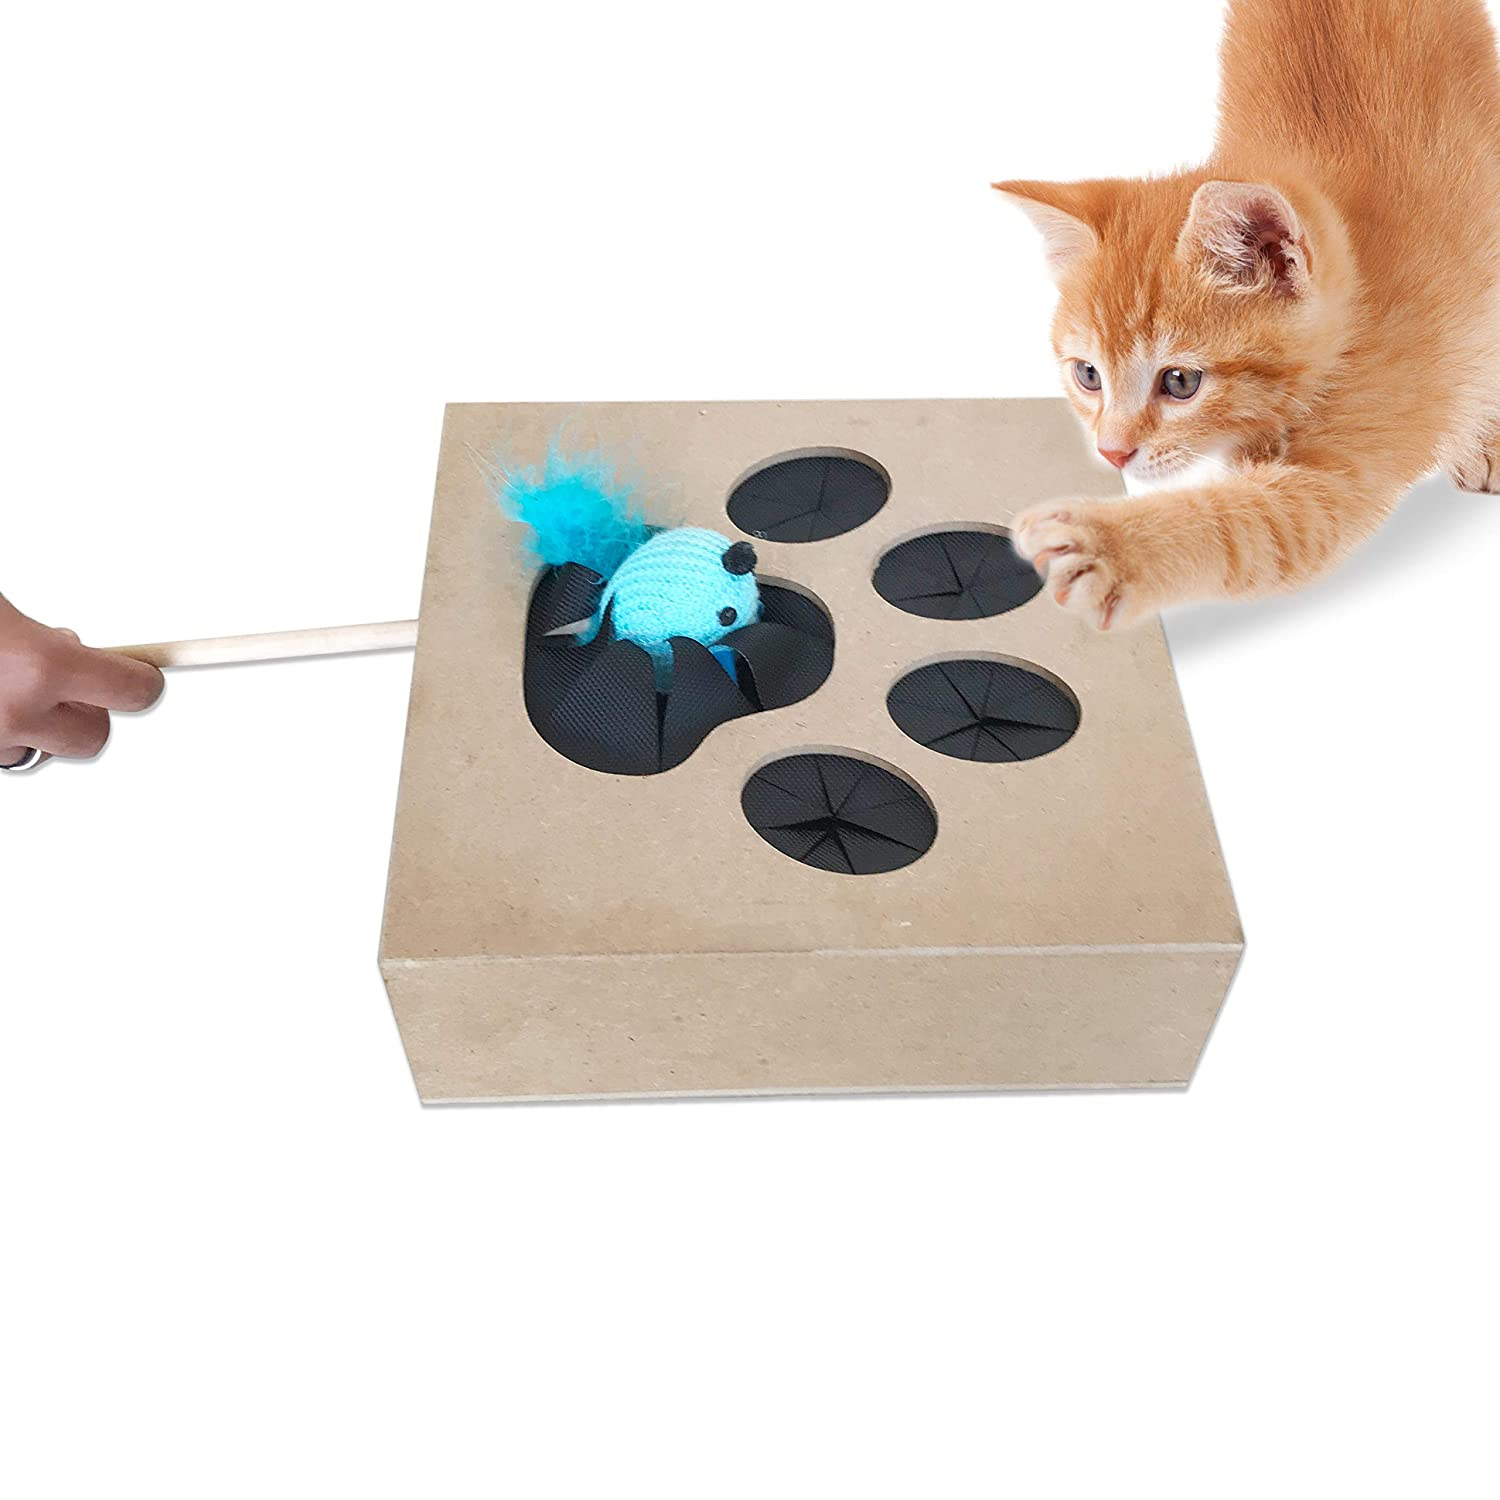 Amazon.com: Abrazos Pet Productos Whack un mouse ...